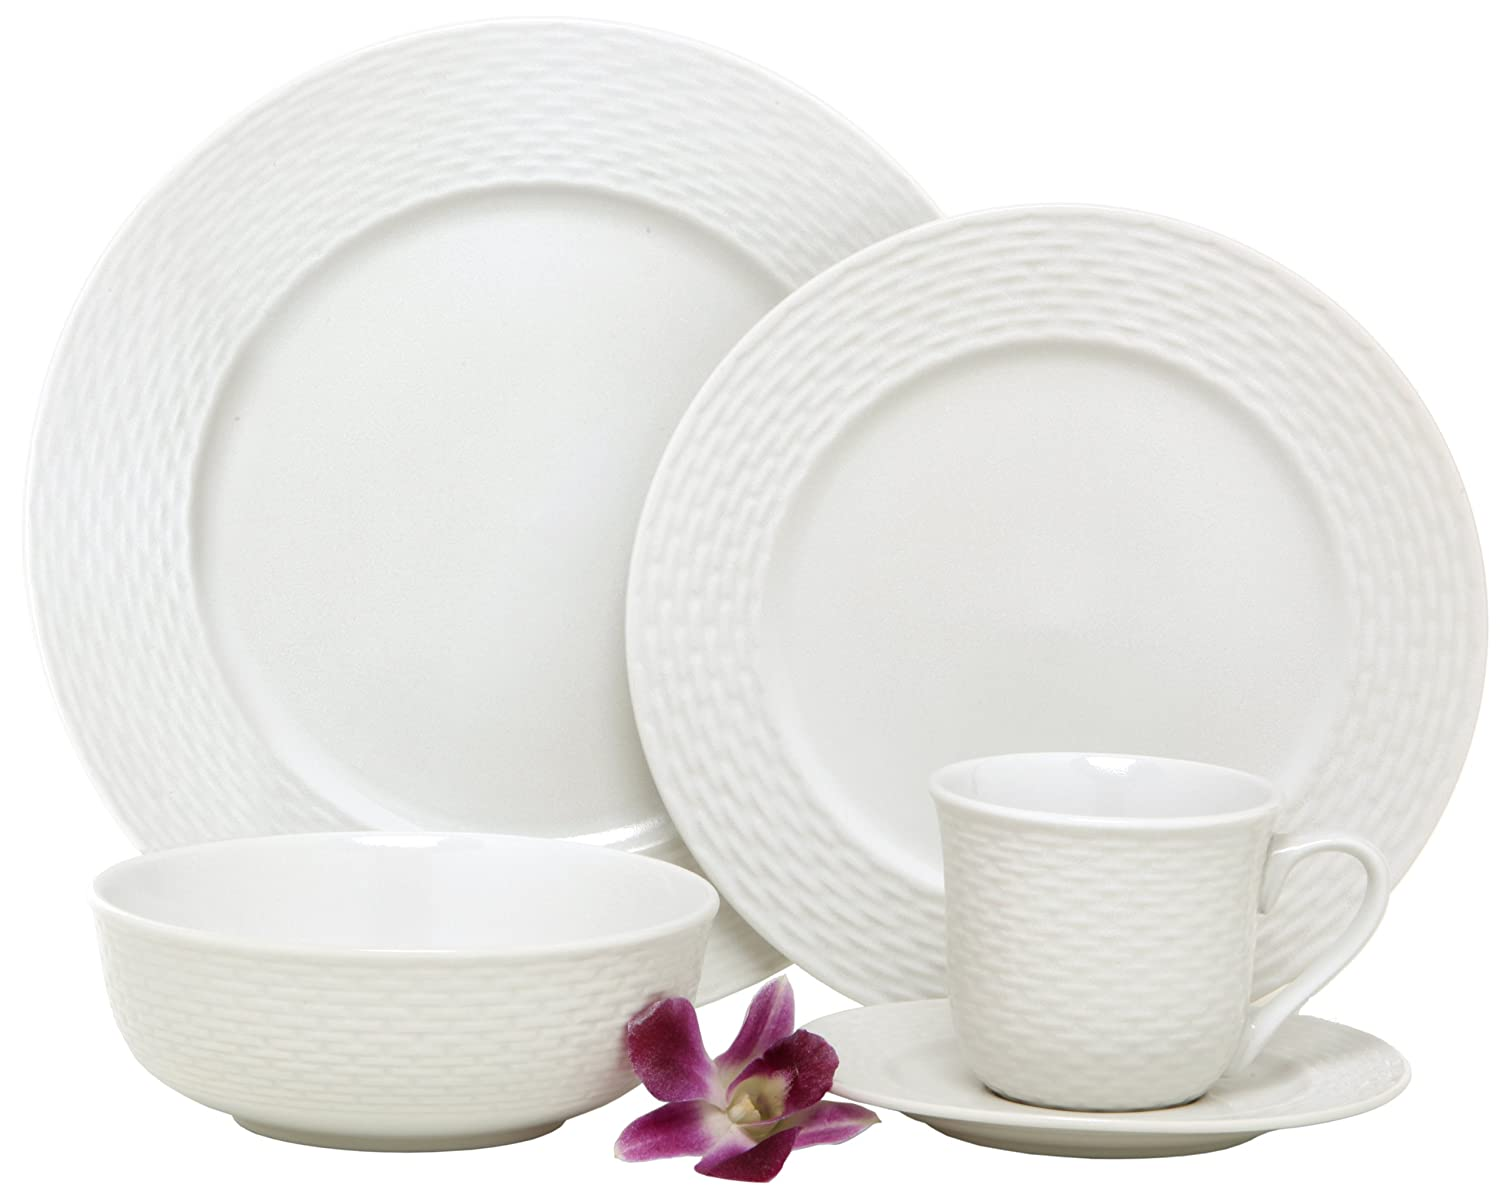 amazoncom melange 40piece porcelain dinnerware set nantucket weave service for 8 microwave dishwasher u0026 oven safe dinner plate salad plate